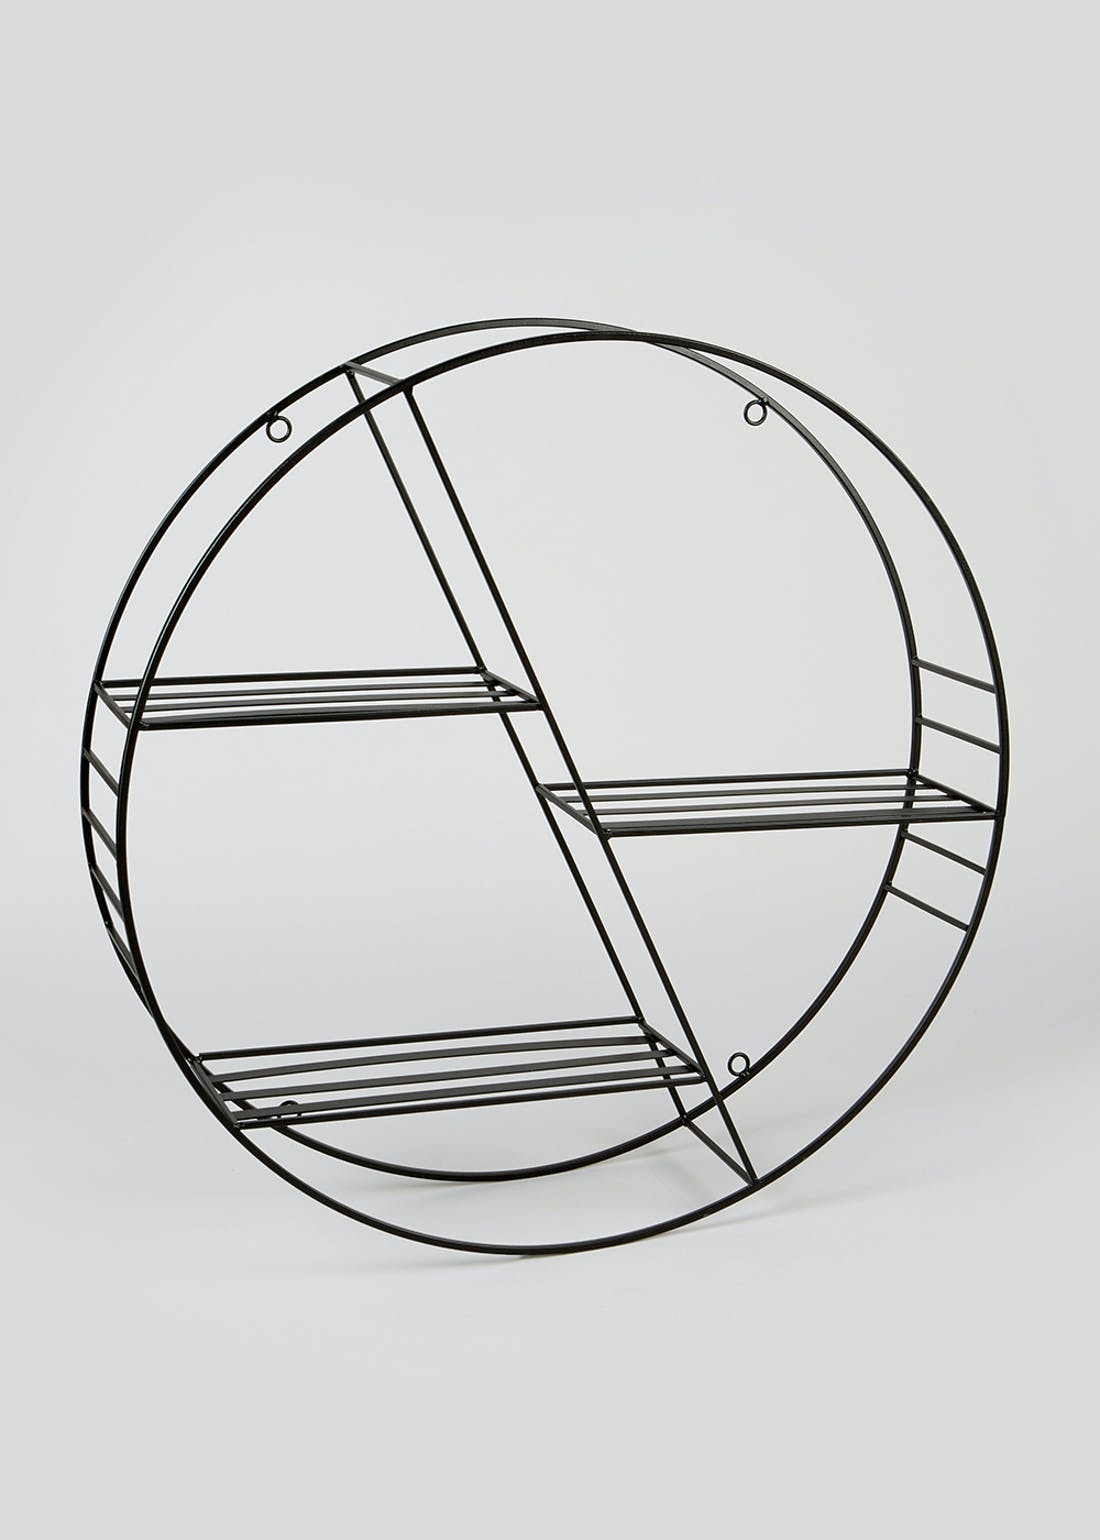 Circular Metal Shelf (53cm x 53cm)